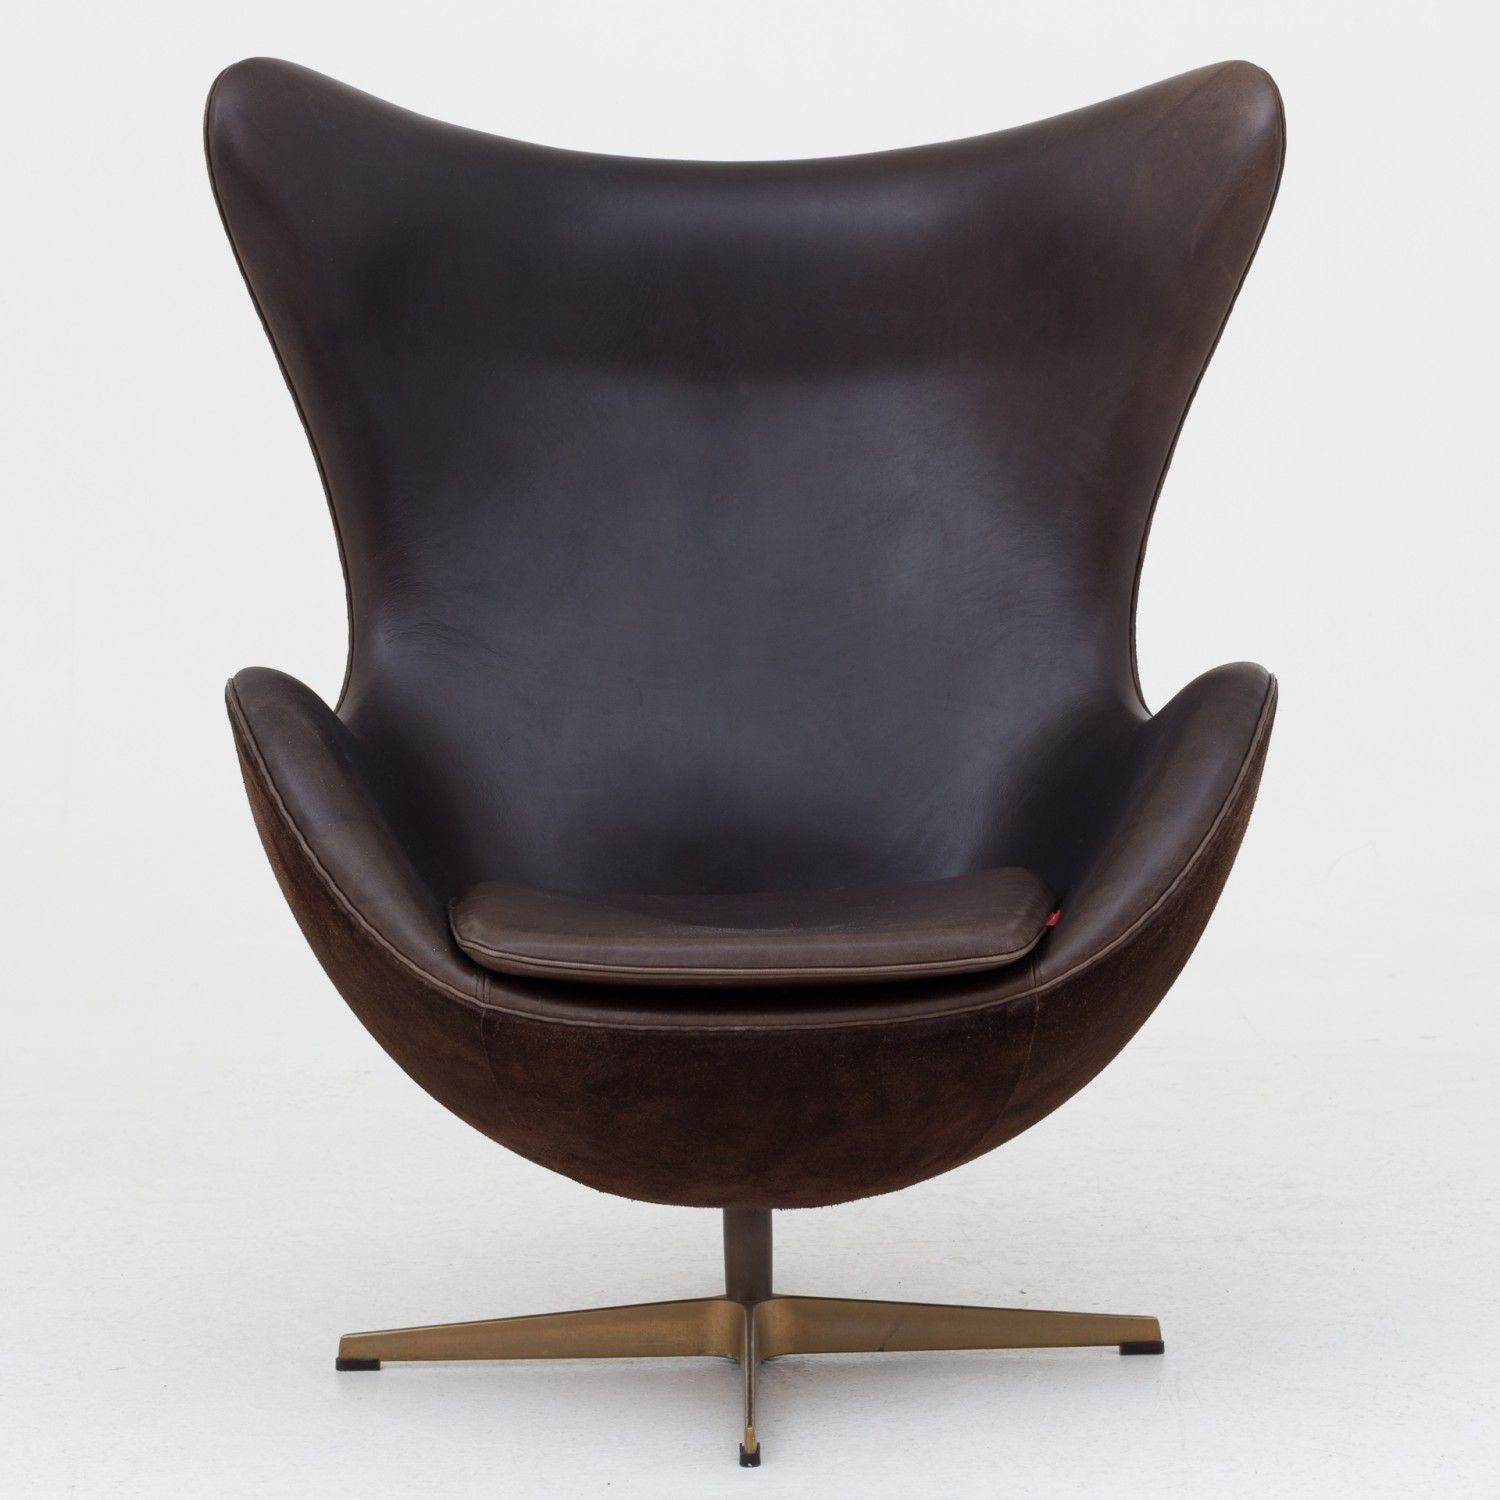 Egg chair   Brown leather recliner chair, Egg chair, White ...